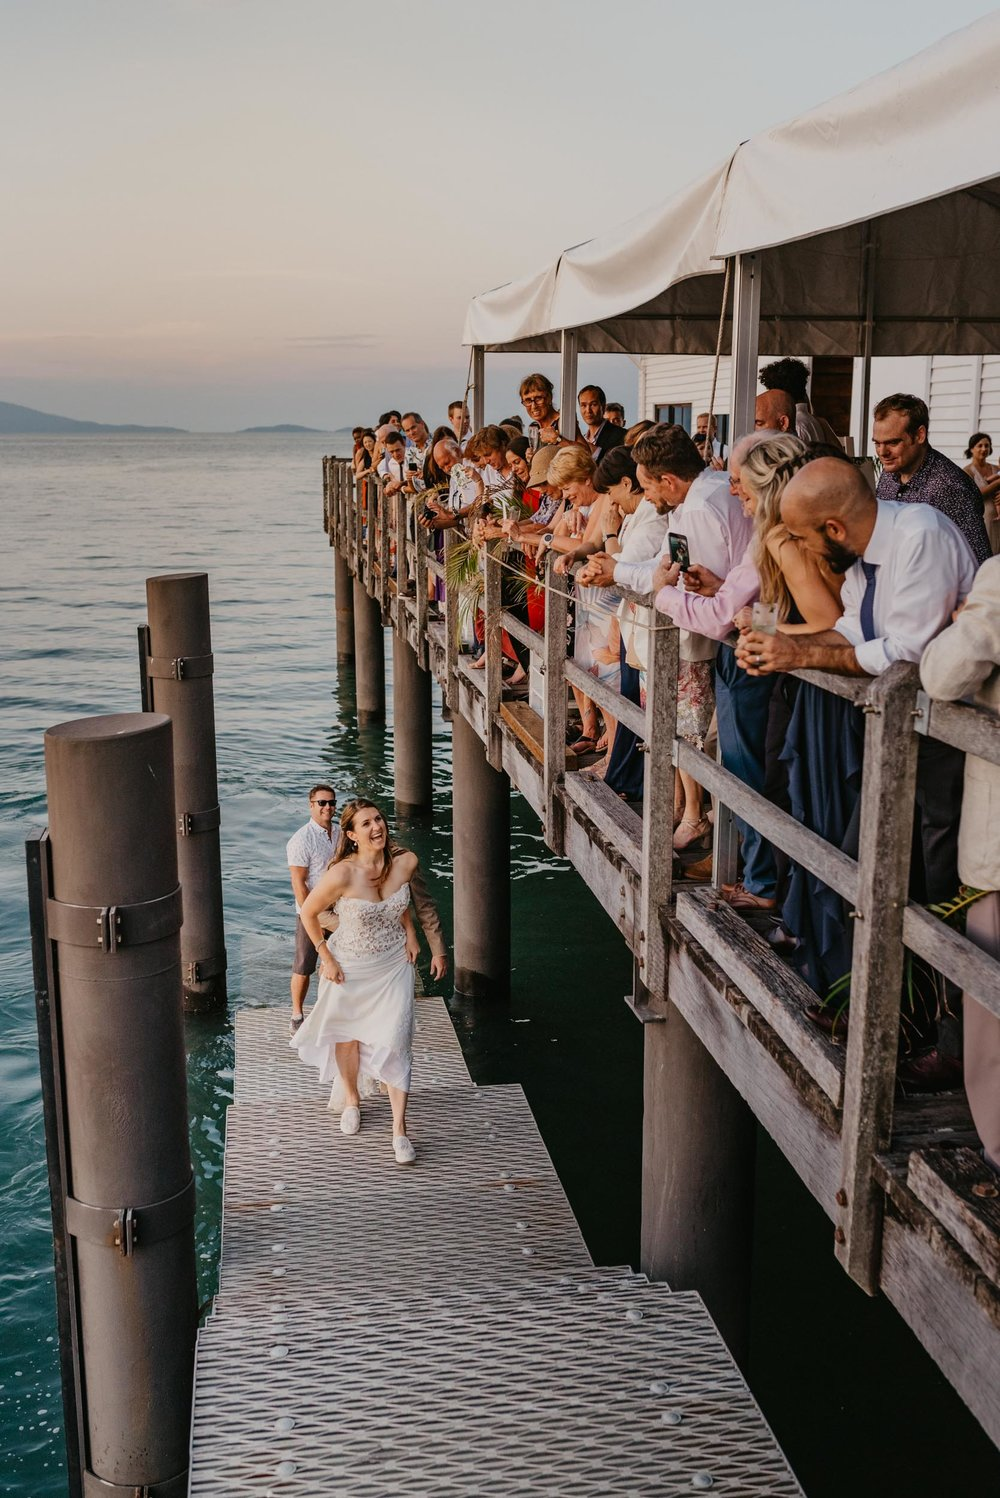 The Raw Photographer - Cairns Wedding Photographer - Sugar Wharf - Port Douglas Reception - Little Cove Ceremony-87.jpg